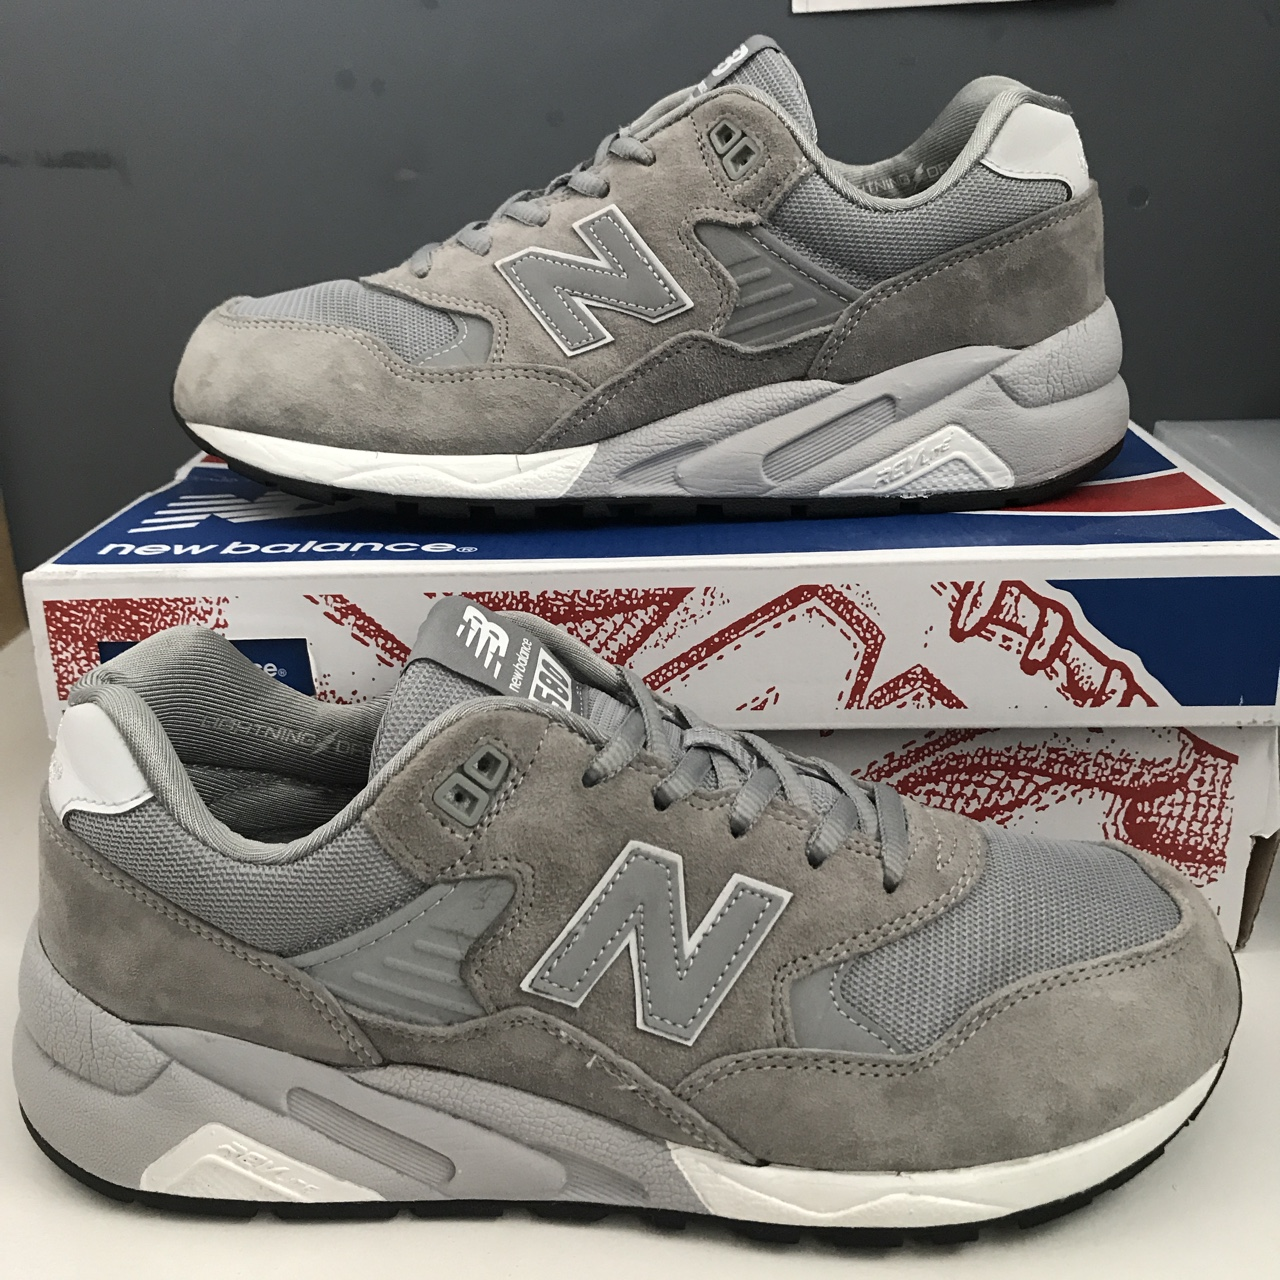 new arrival 6a3d9 63054 New Balance 580 REVlite Suede Grey Reflective UK... - Depop